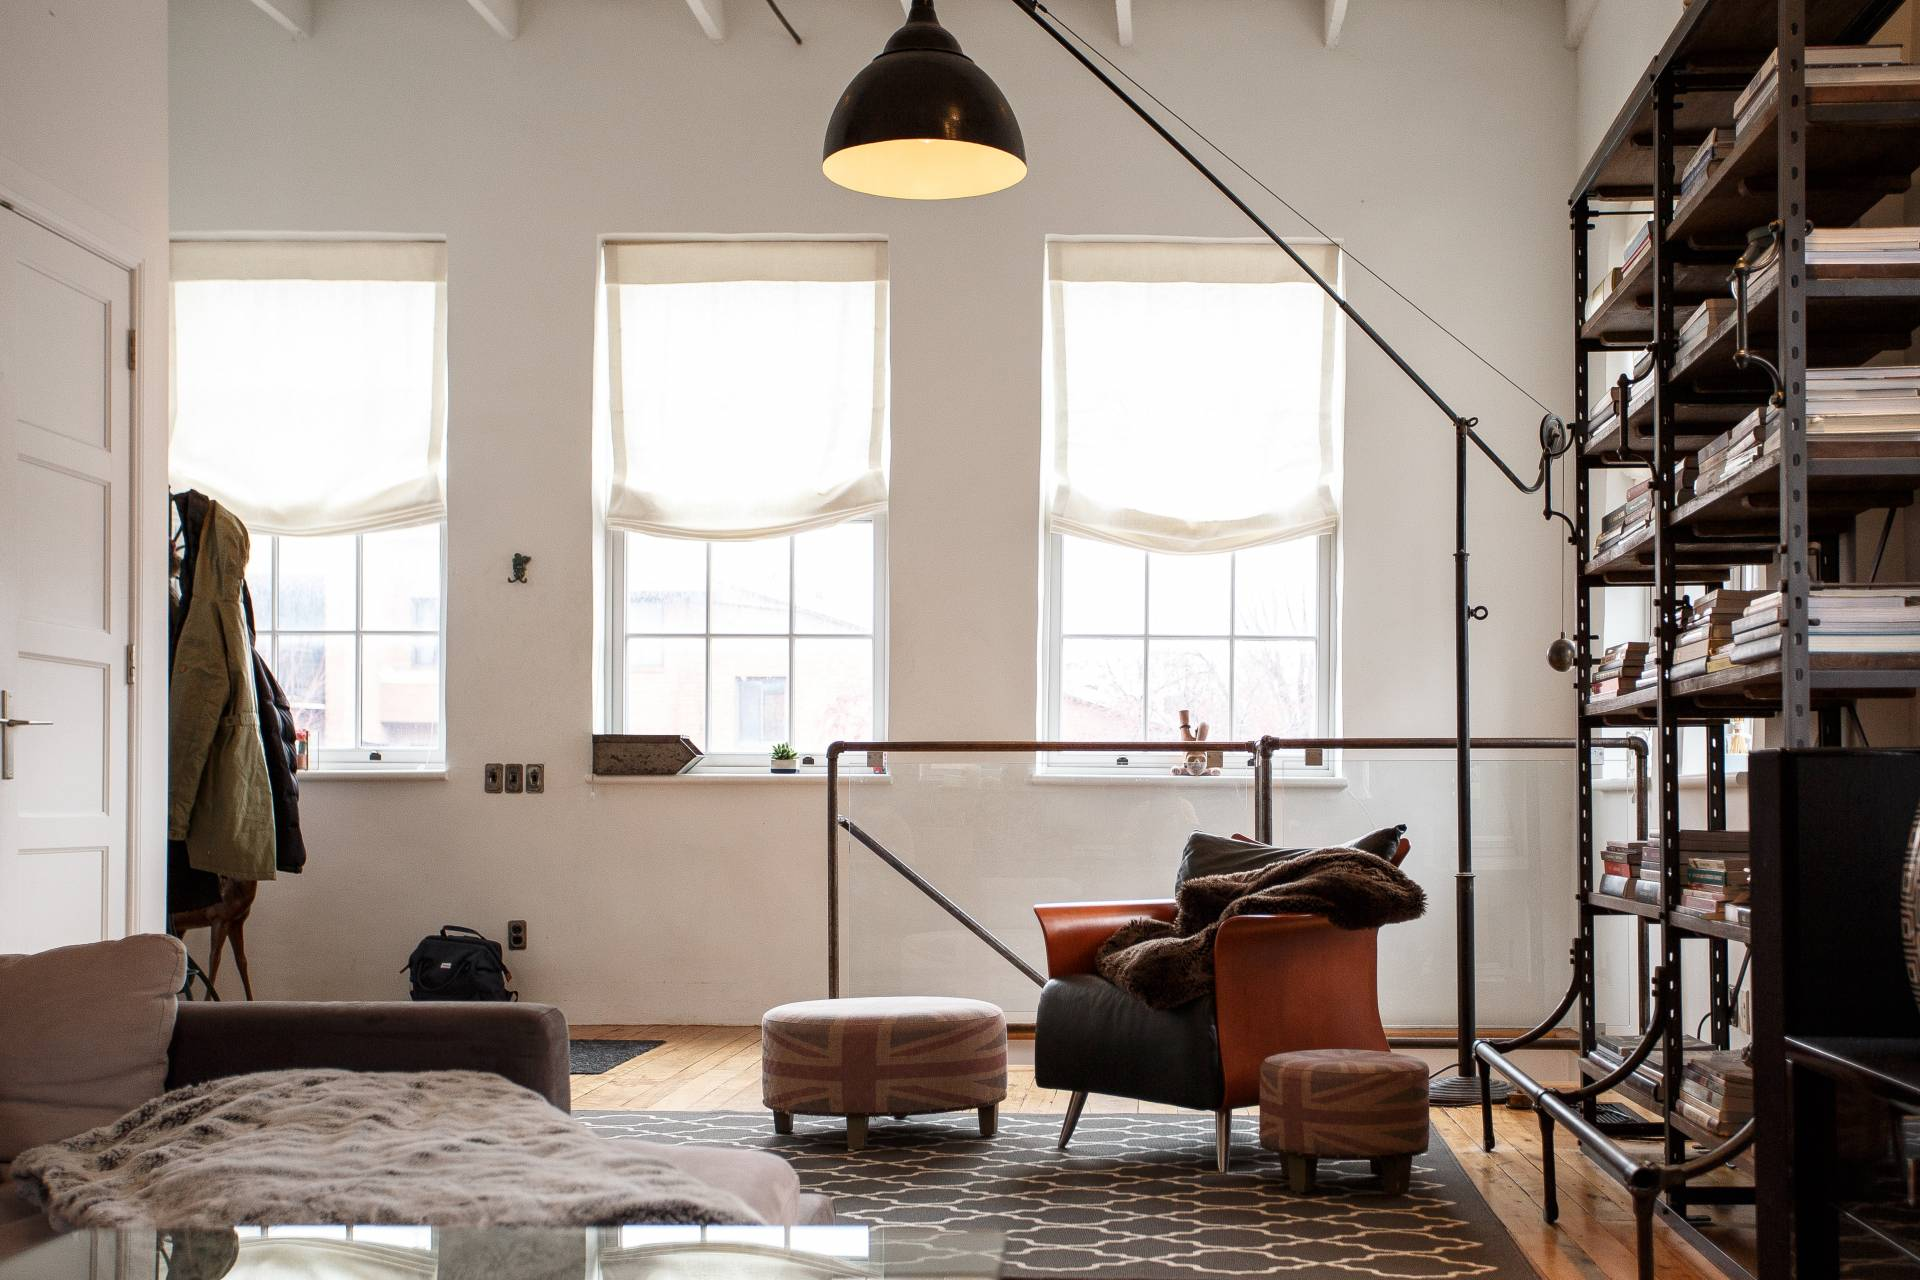 How to Make a Loft Space Feel Homely